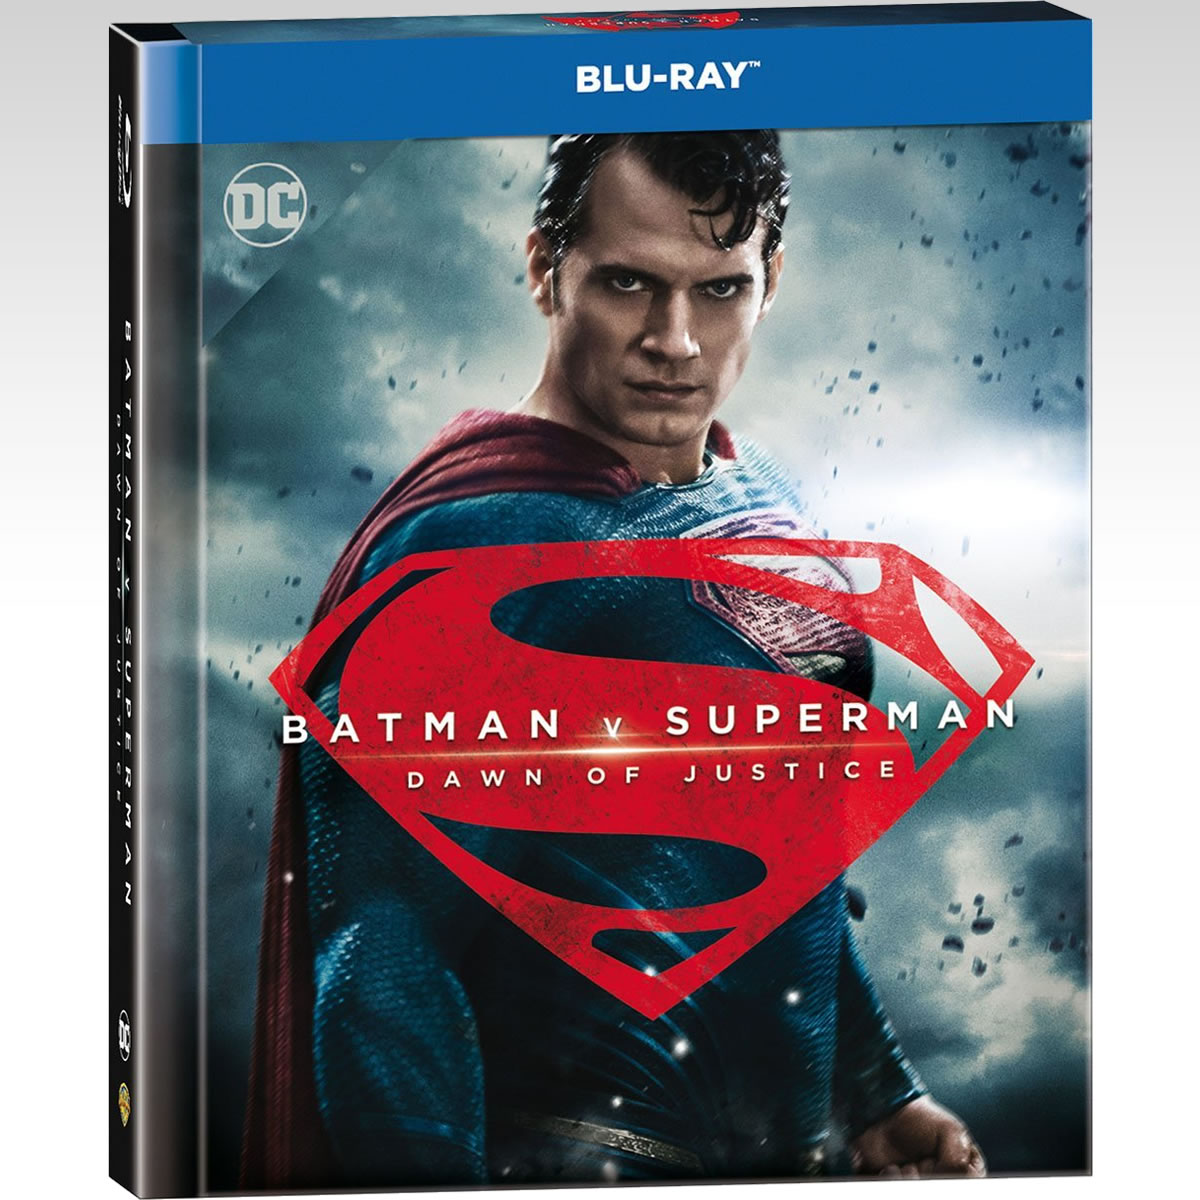 BATMAN V SUPERMAN: DAWN OF JUSTICE Extended Unrated Cut ULTIMATE EDITION Digibook - BATMAN V SUPERMAN: Η ΑΥΓΗ ΤΗΣ ΔΙΚΑΙΟΣΥΝΗΣ Extended Unrated Cut ULTIMATE EDITION Digibook [Εισαγωγής ΜΕ ΕΛΛΗΝΙΚΟΥΣ ΥΠΟΤΙΤΛΟΥΣ] (2 BLU-RAYs)